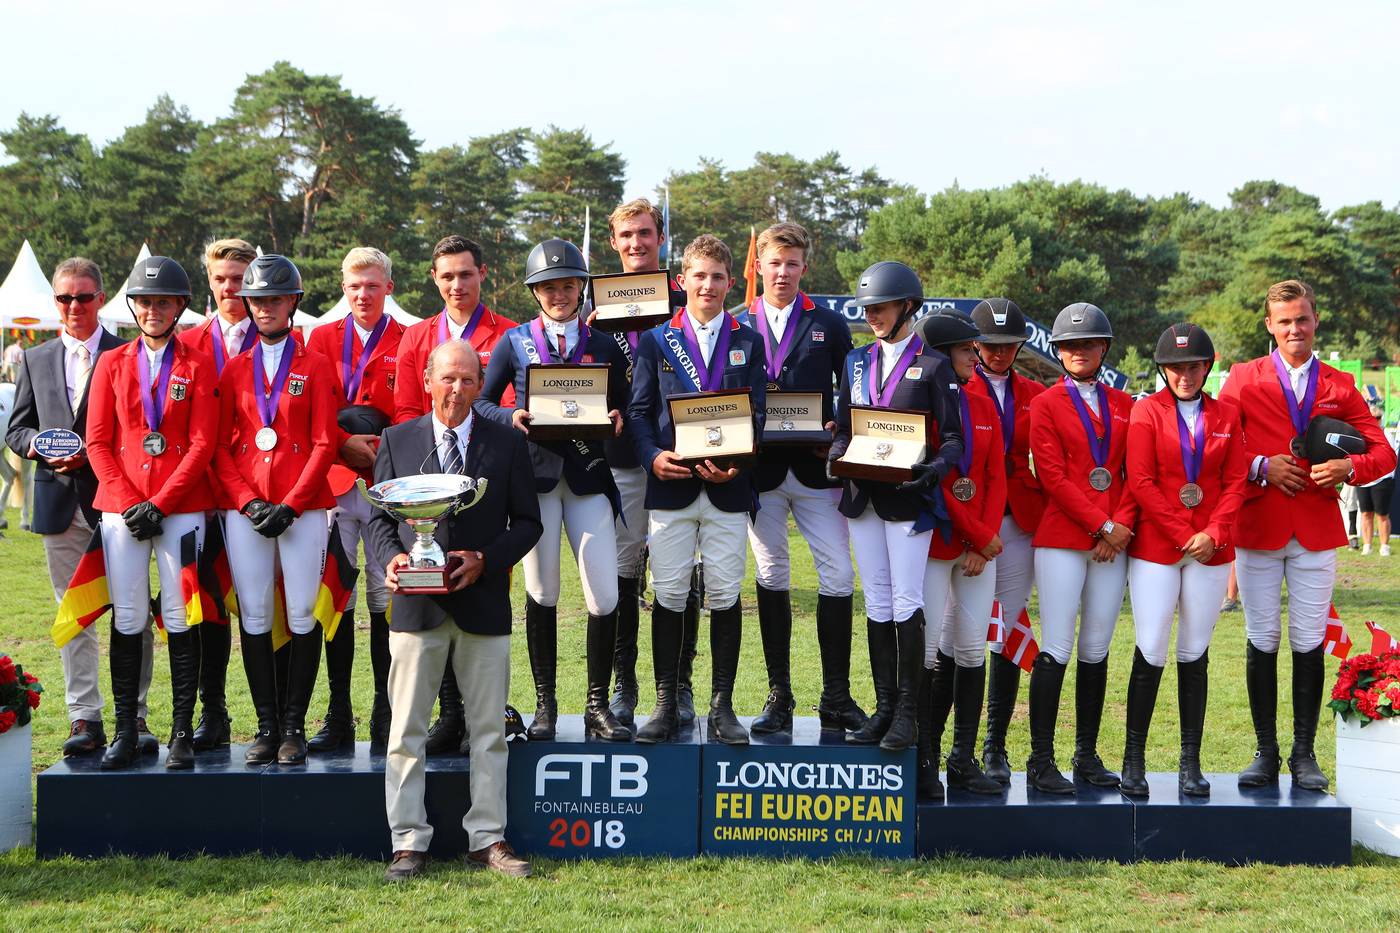 Longines Show Jumping Event: The next generation of athletes showcased in the Longines FEI European Championships CH / J / YR 7